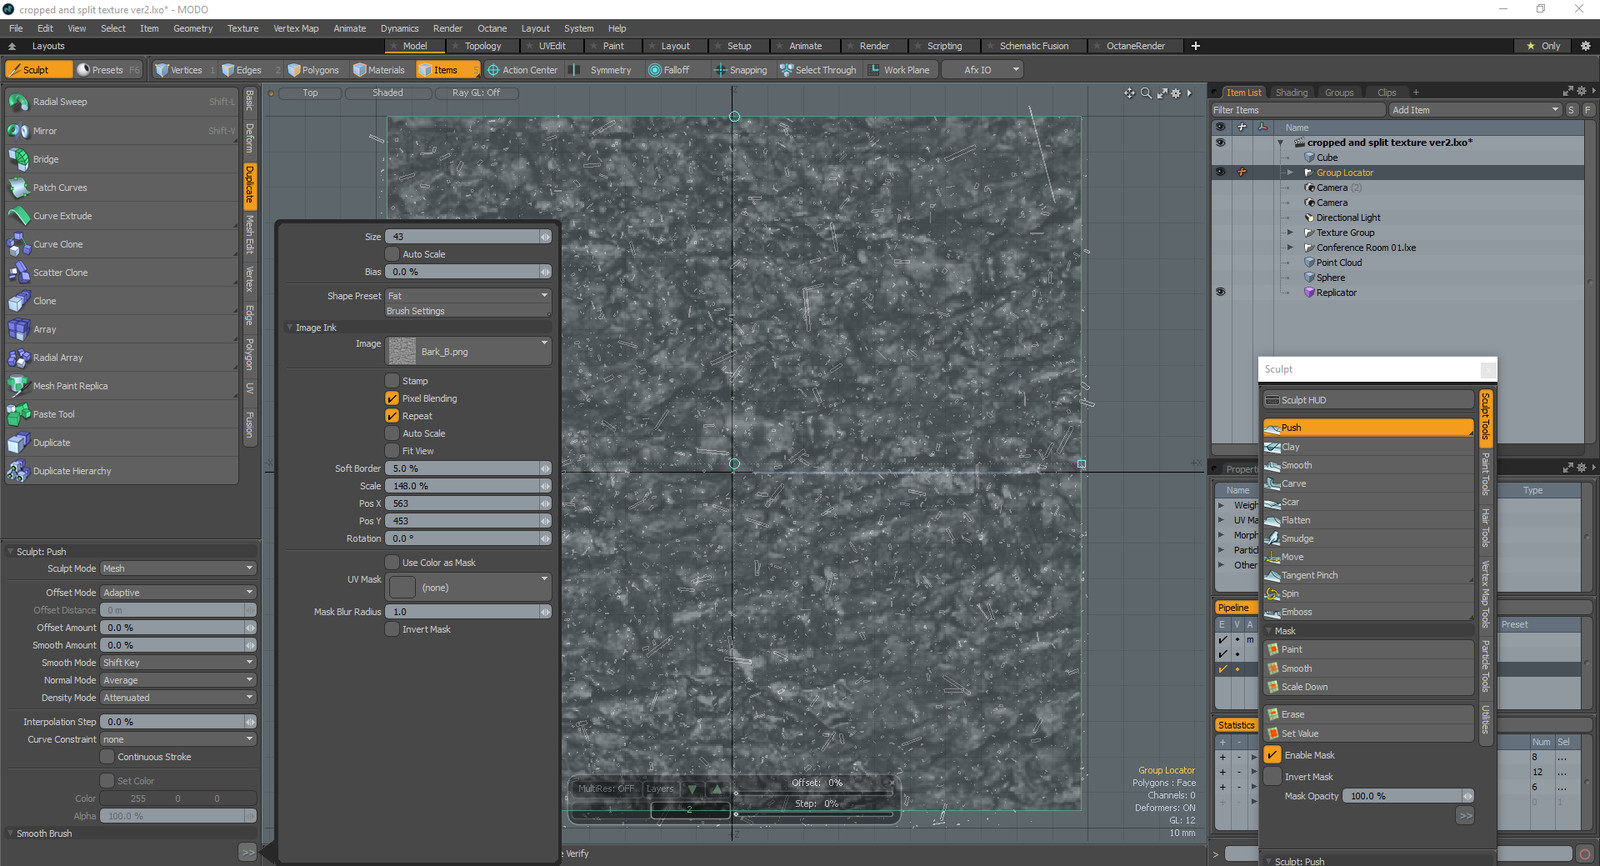 We have 2d dust curves but they need depth. So I use push tool from sculpt tools of modo. I use a noise map to push some of the vertices of the curves. 